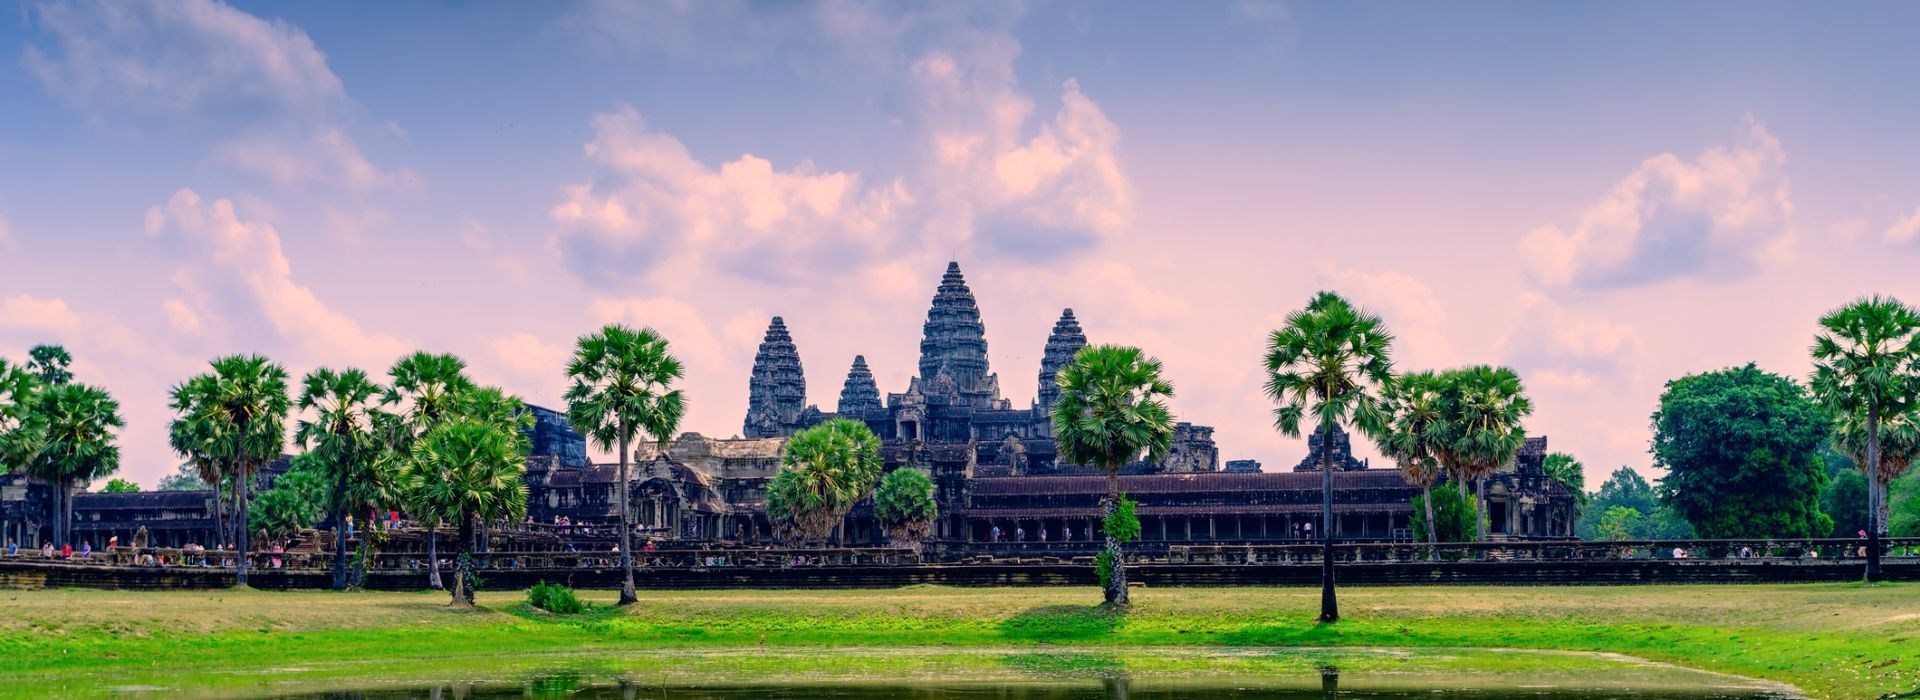 Cruise Tours in Angkor Wat